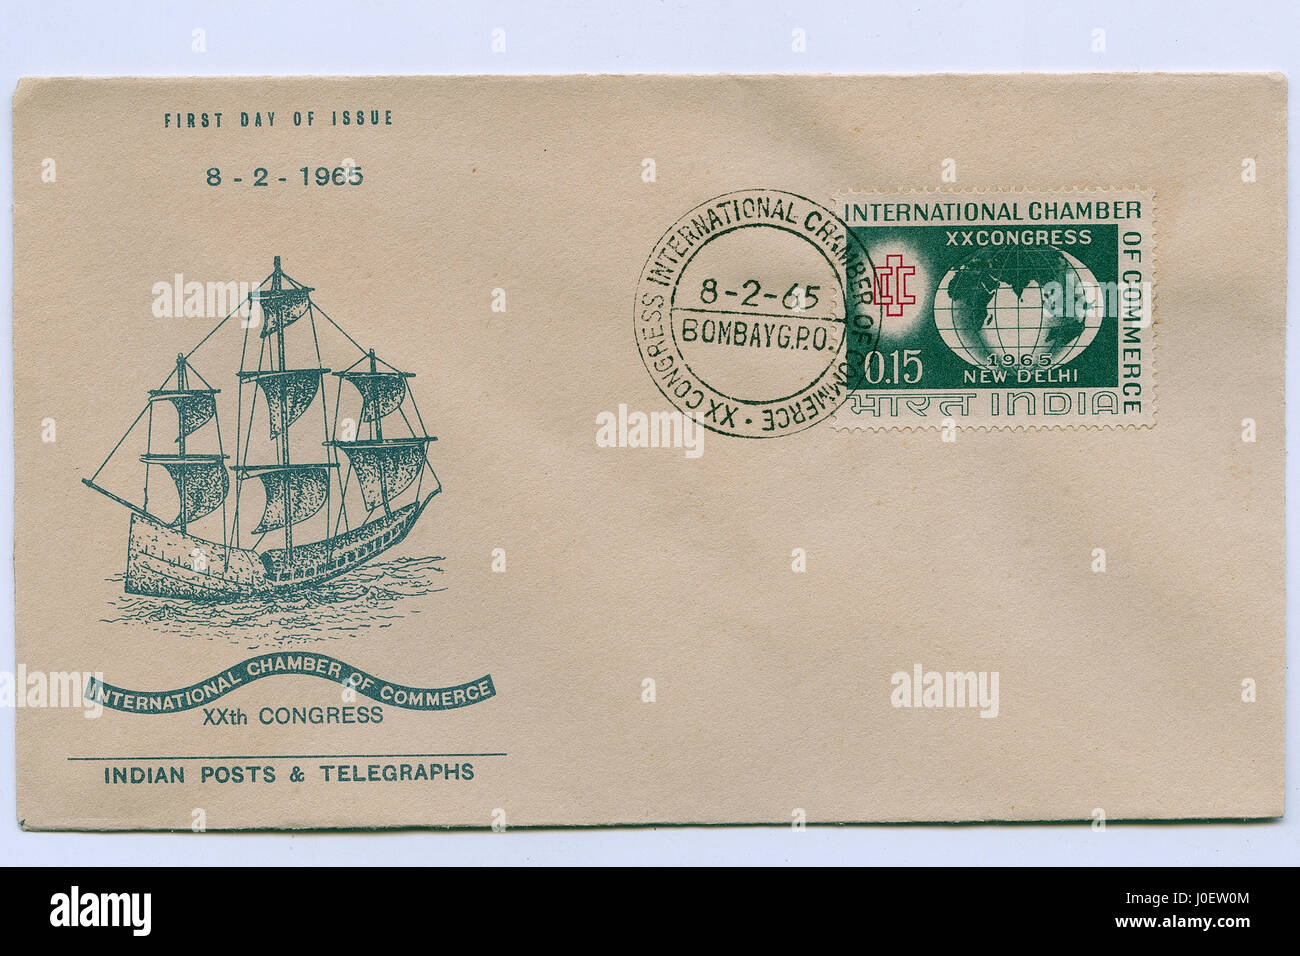 International chamber of commerce first day cover, postage stamps, india, asia - Stock Image